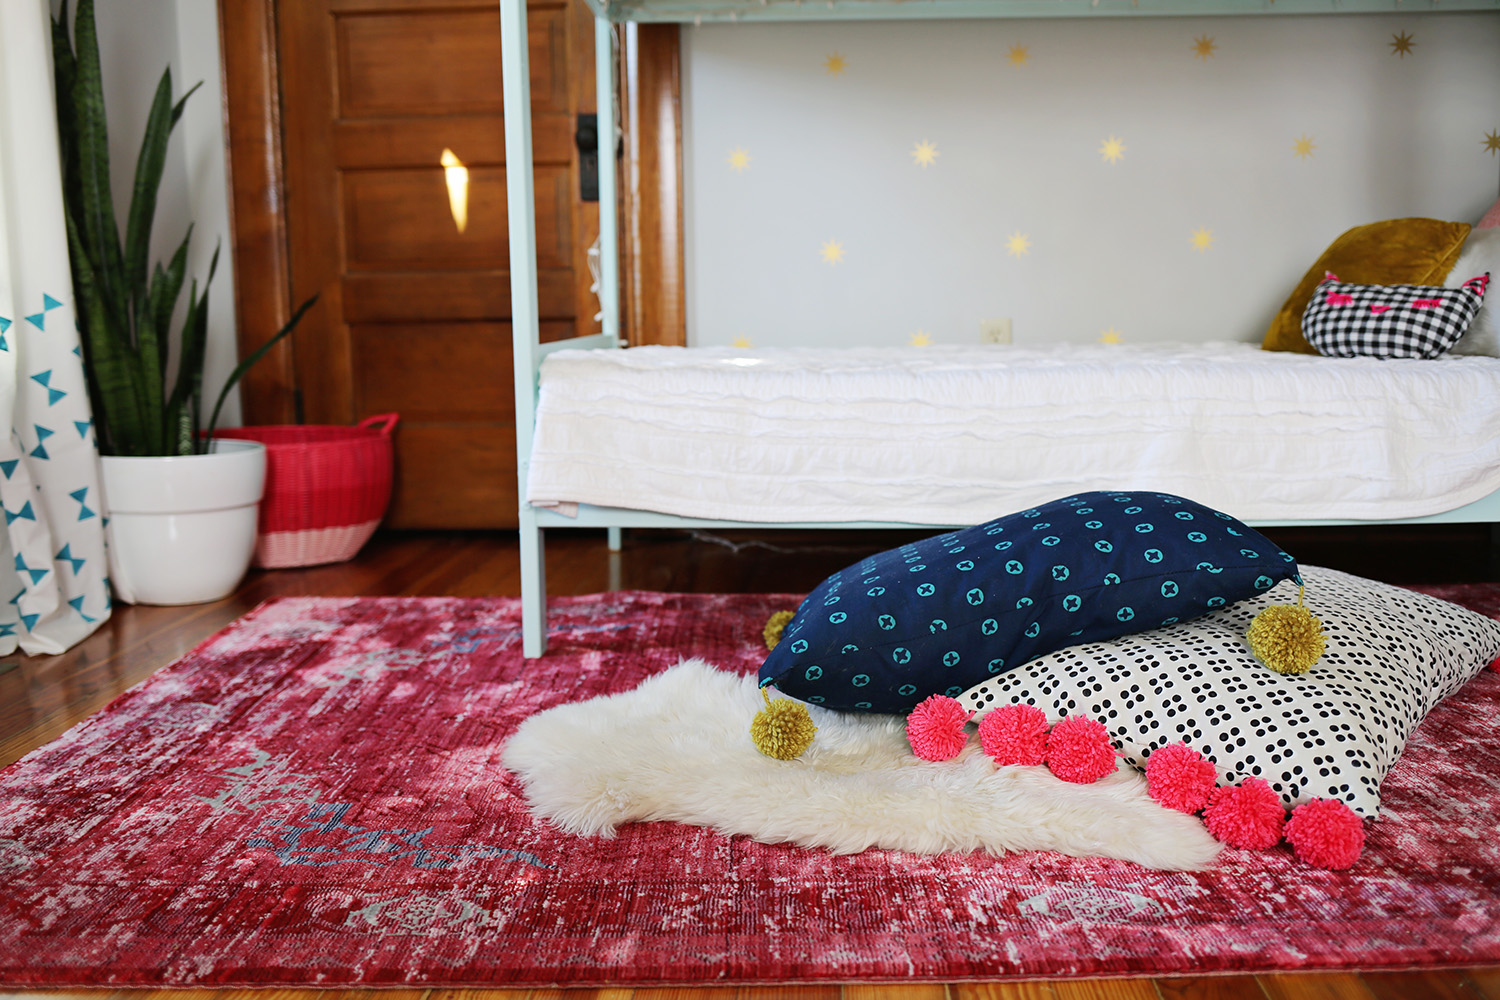 Floor Pillows with Pom Poms